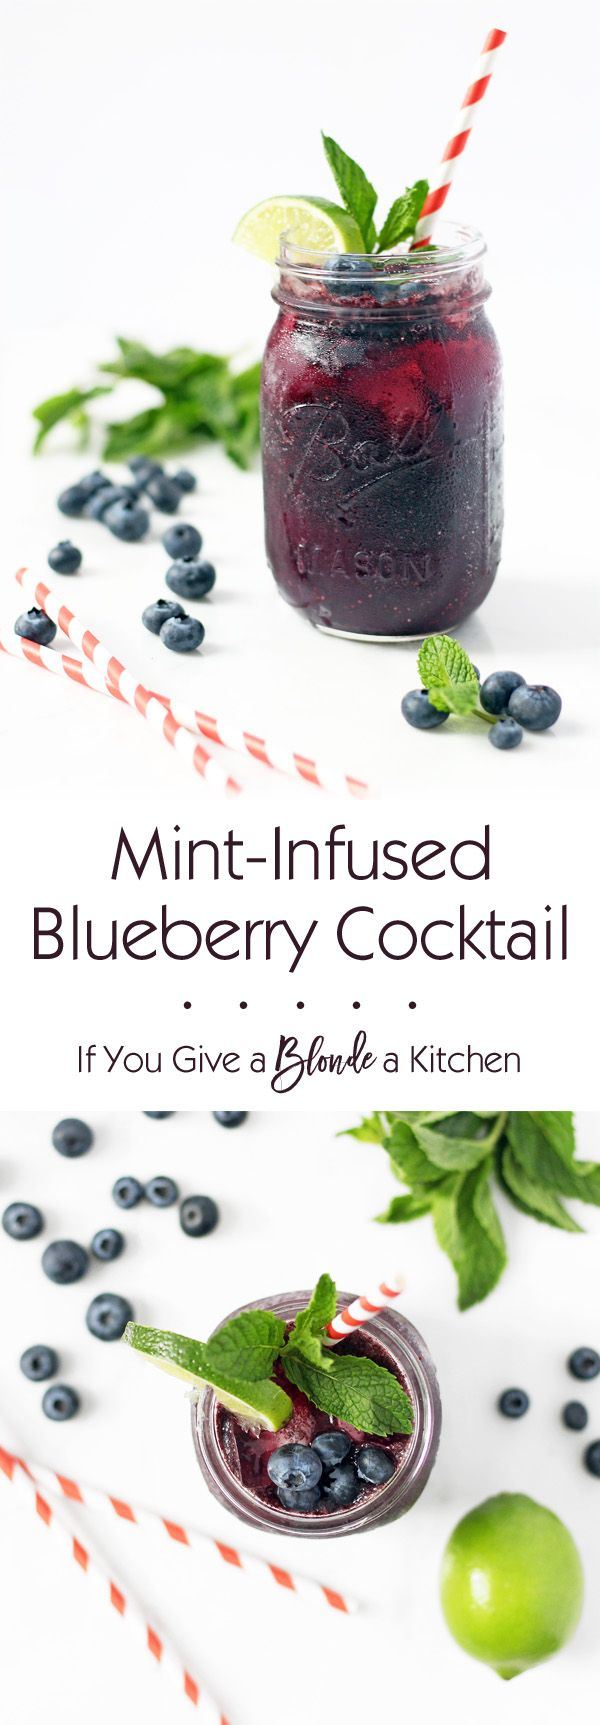 Mint-infused blueberry cocktail is refreshing, subtly sweet and gets you just the right amount of tipsy. This recipe is a must for summer! | www.ifyougiveablondeakitchen.com